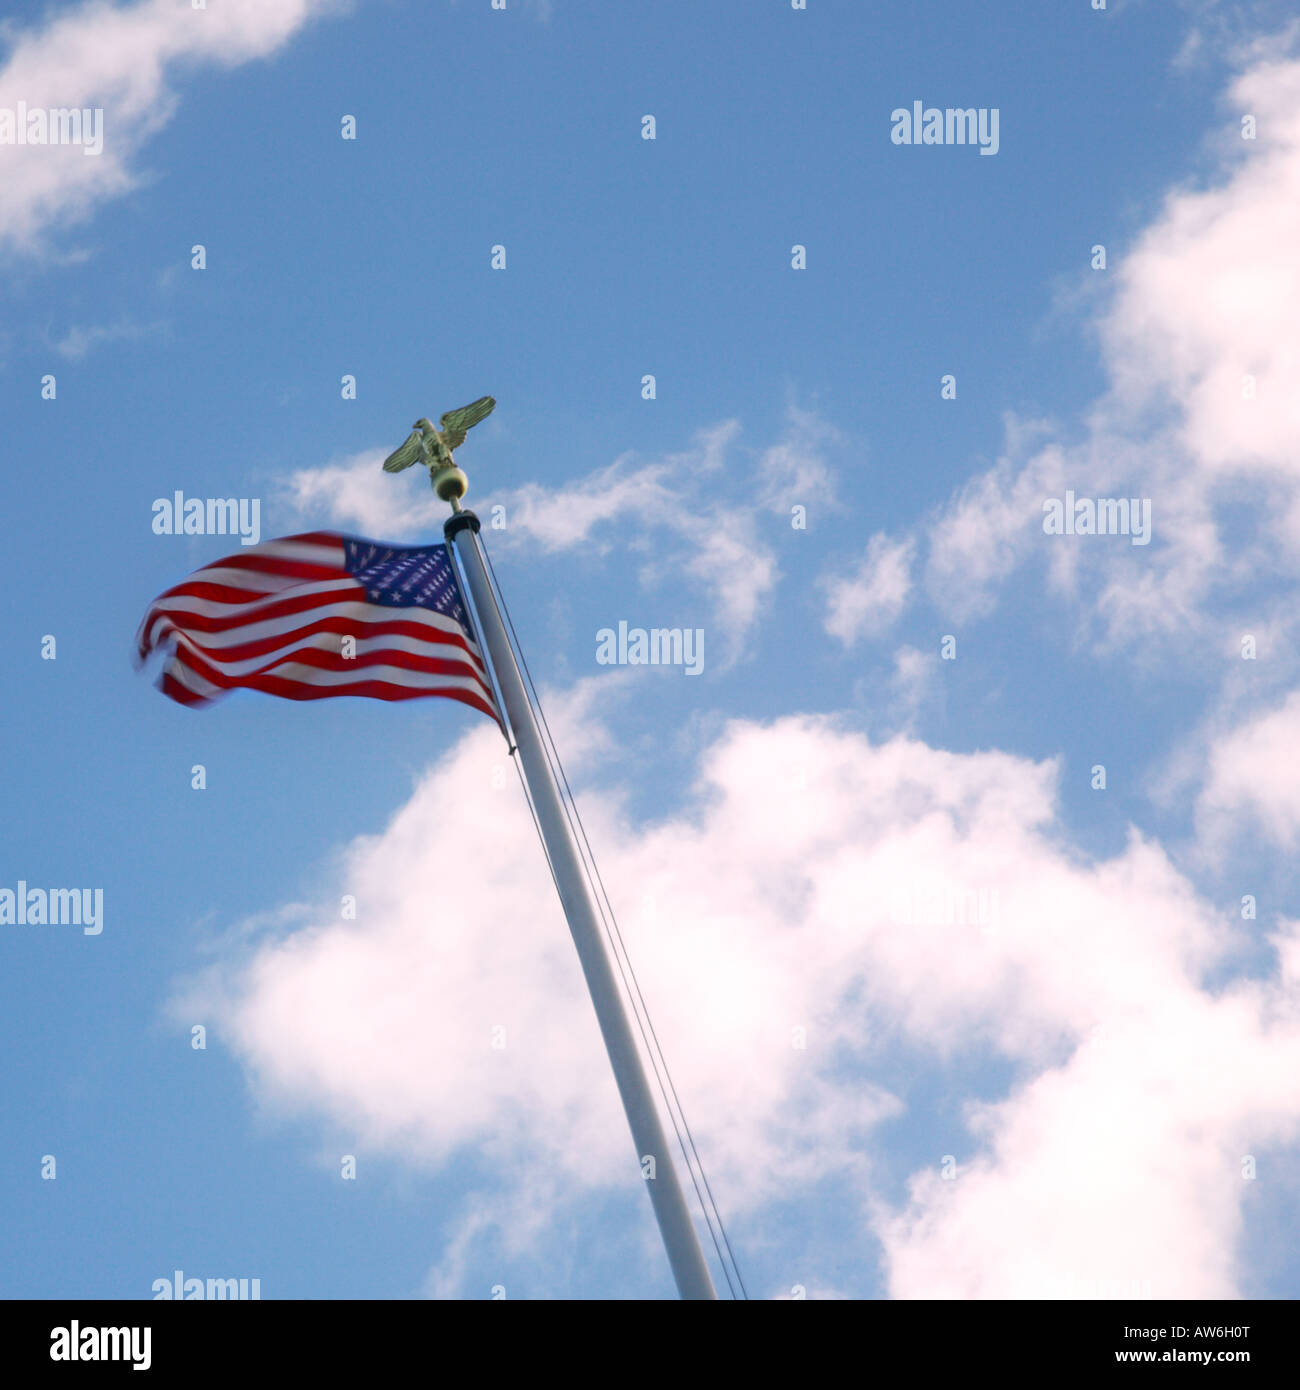 American Flag and Blue Sky - Stock Image